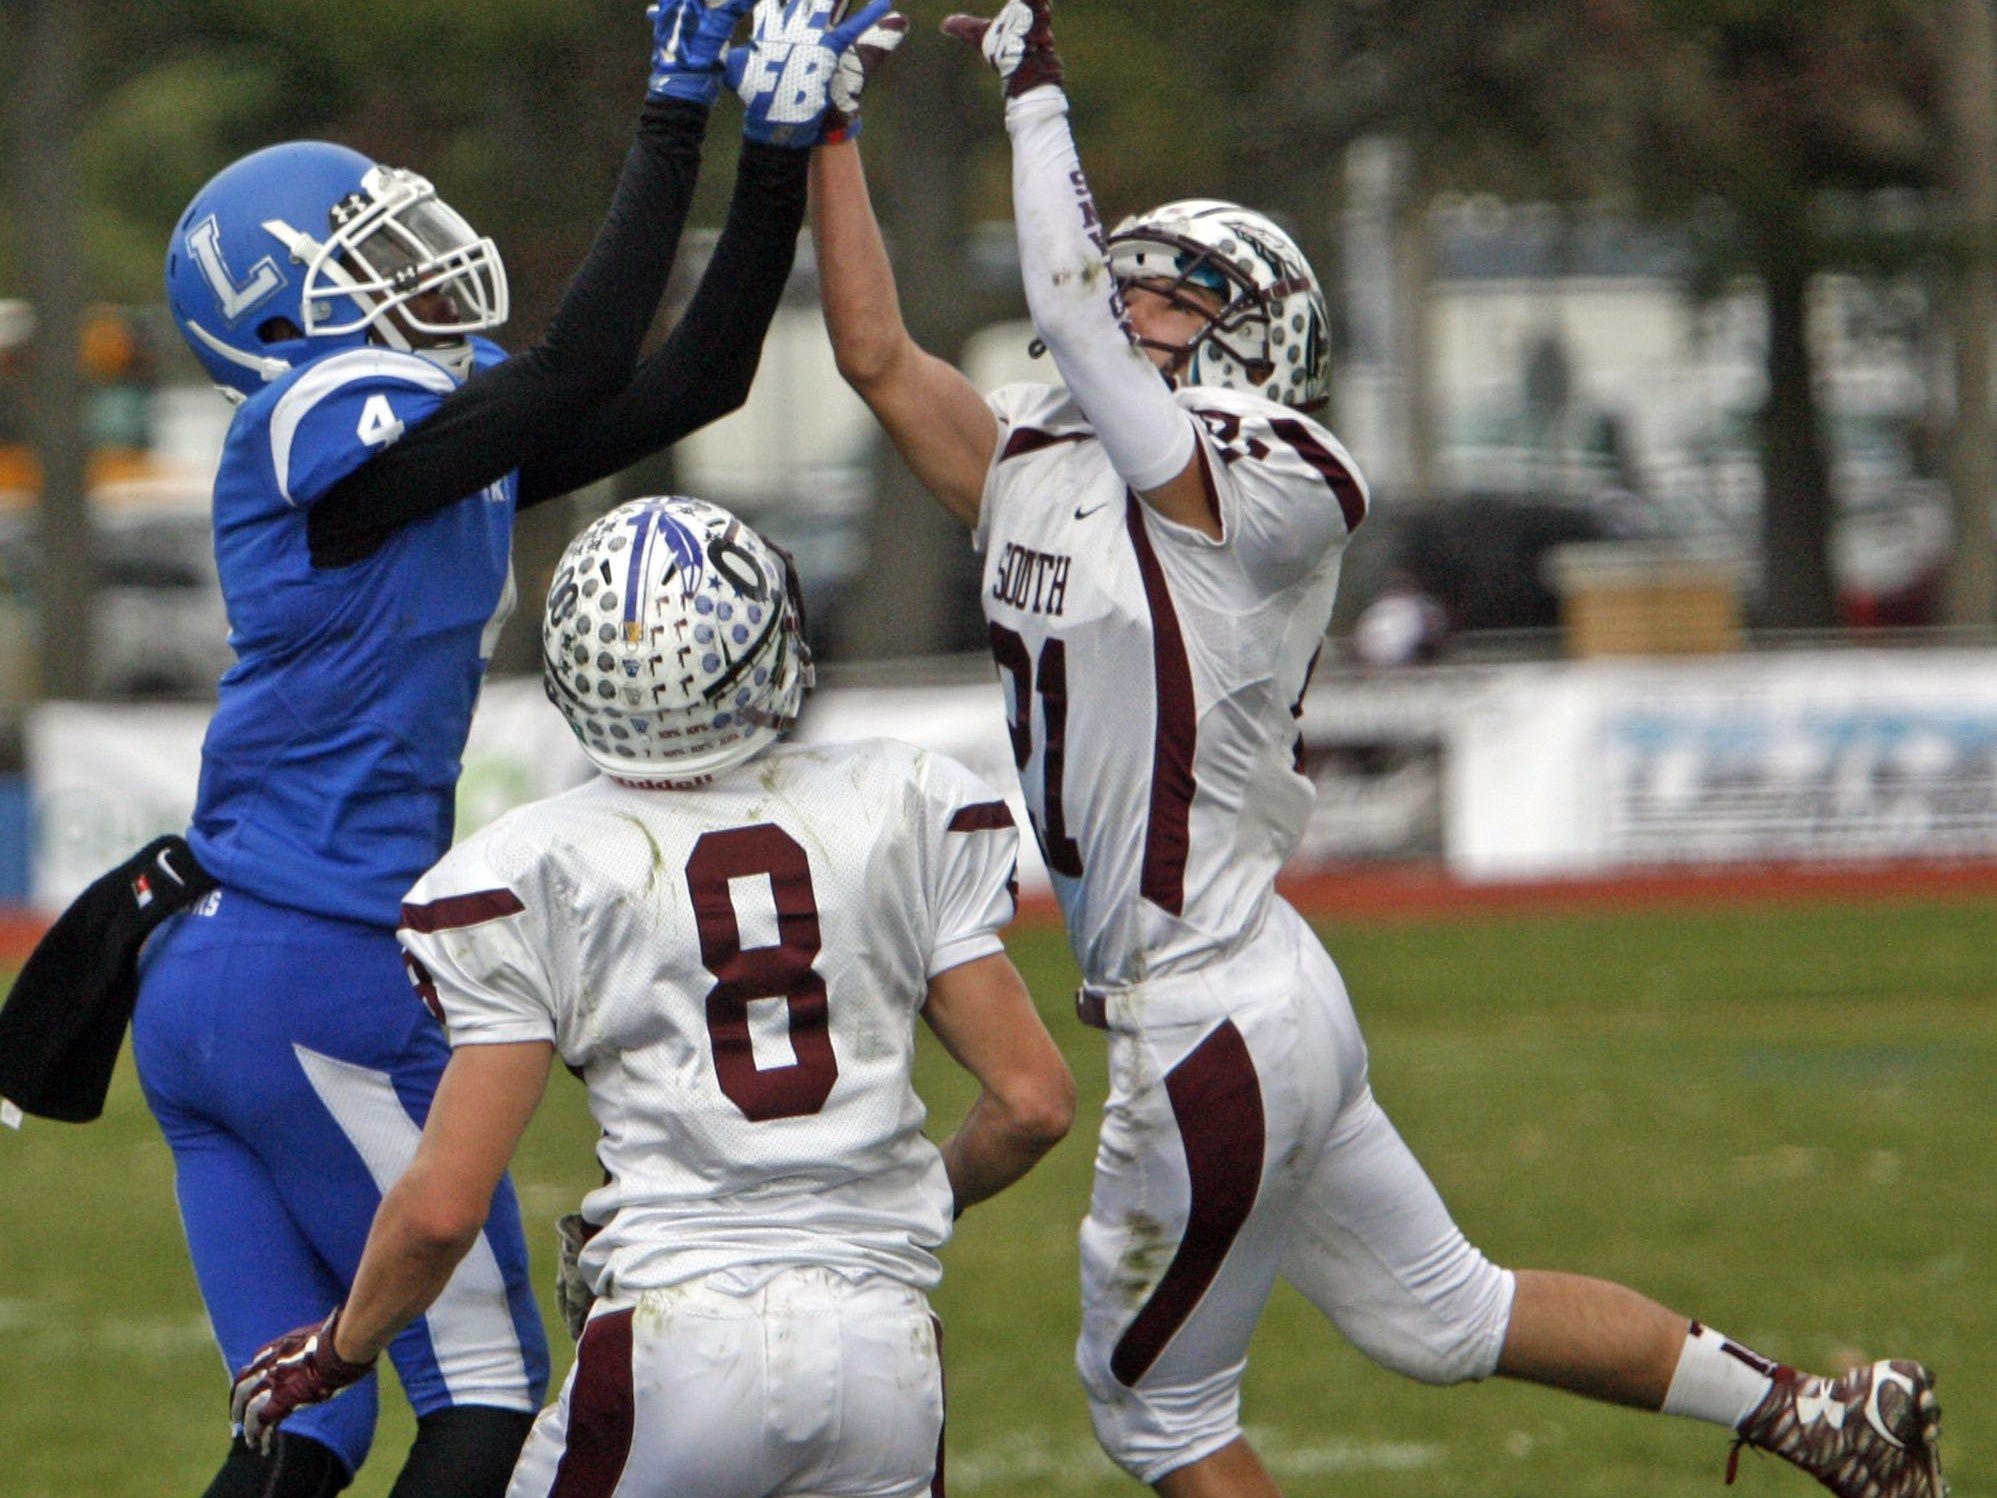 Lakewood's Jyhier Jones, left, tries to intercept an incomplete pass to TJ Rockhill of Toms River South at Lakewood High School Nov. 26, 2015. Photo by Vincent DiSalvio / Special to The ASBURY PARK PRESS